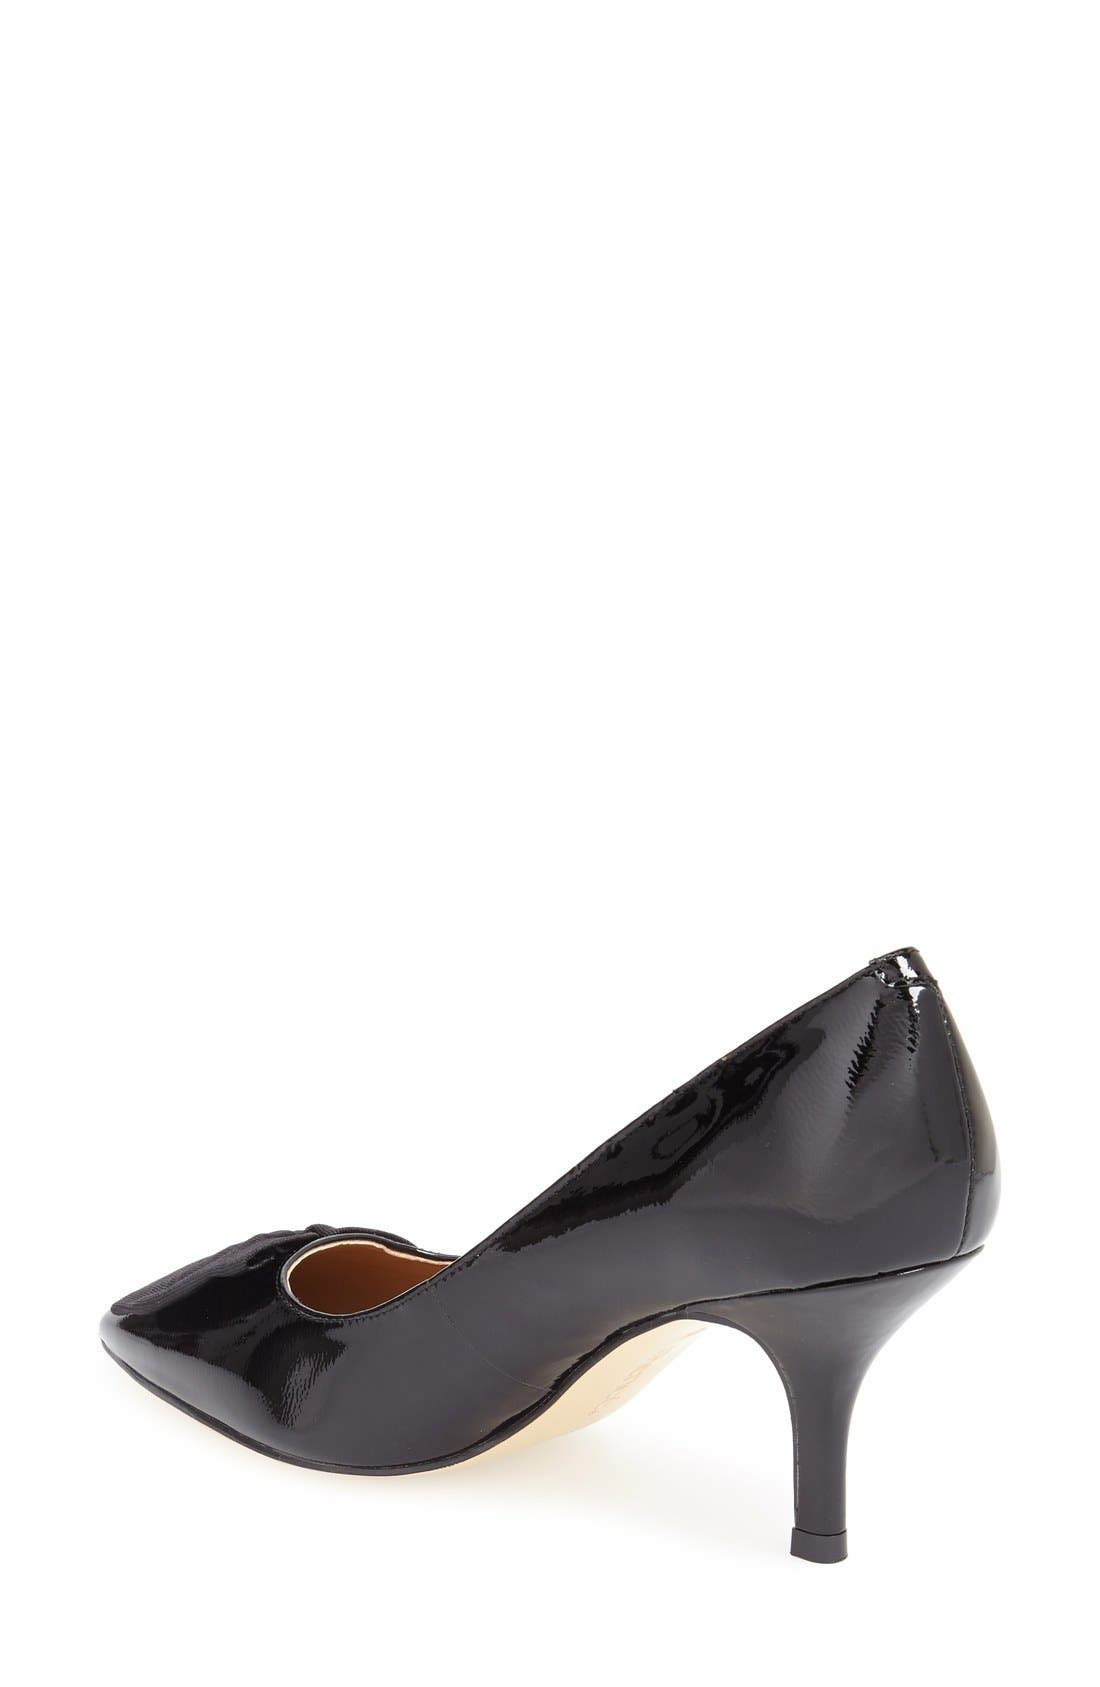 Alternate Image 2  - J. Reneé 'Camley' Pointy Toe Bow Pump (Women)